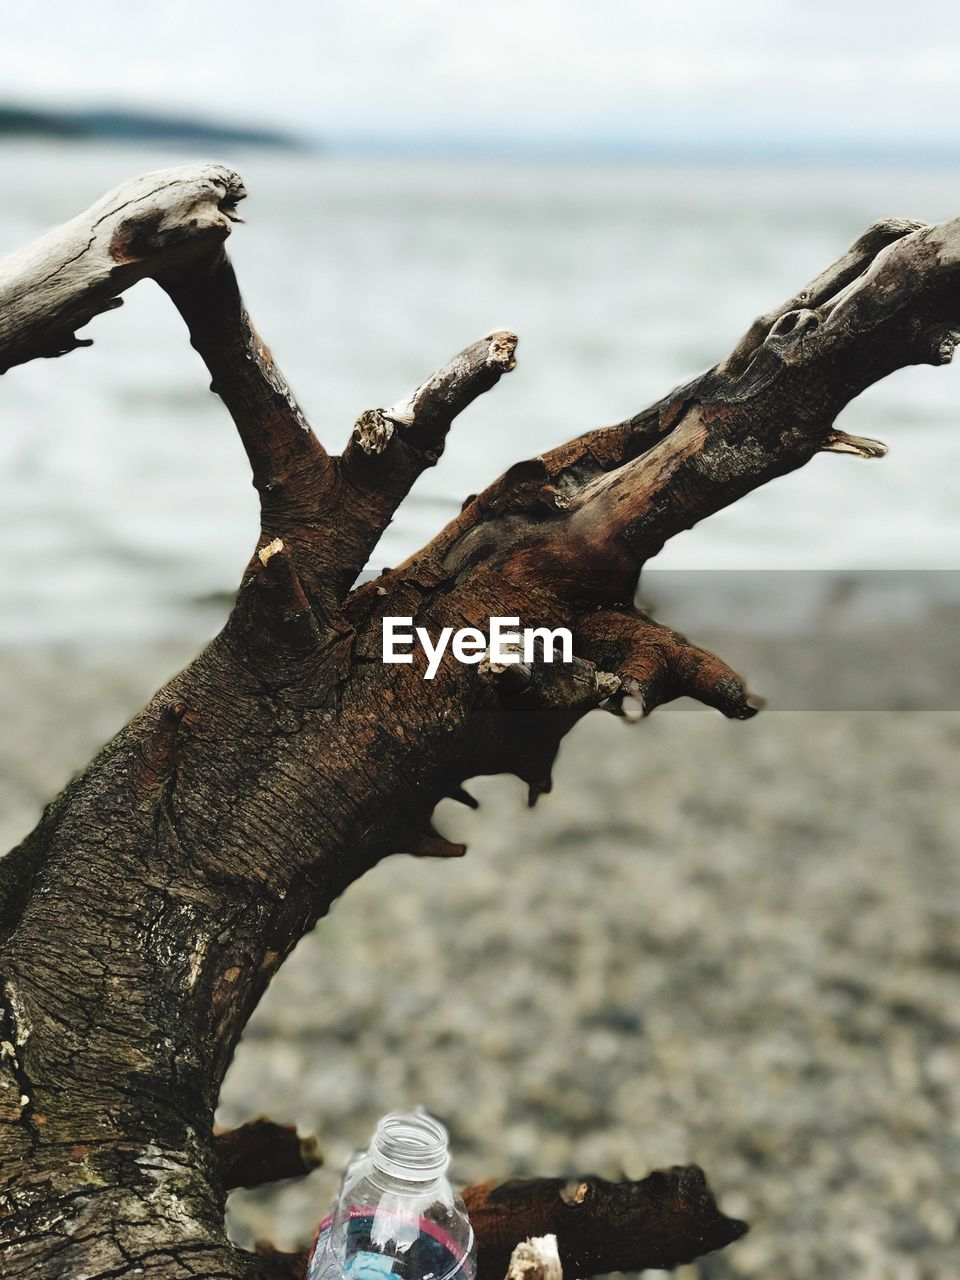 Close-Up Of Rusty Tree Trunk Against Sea